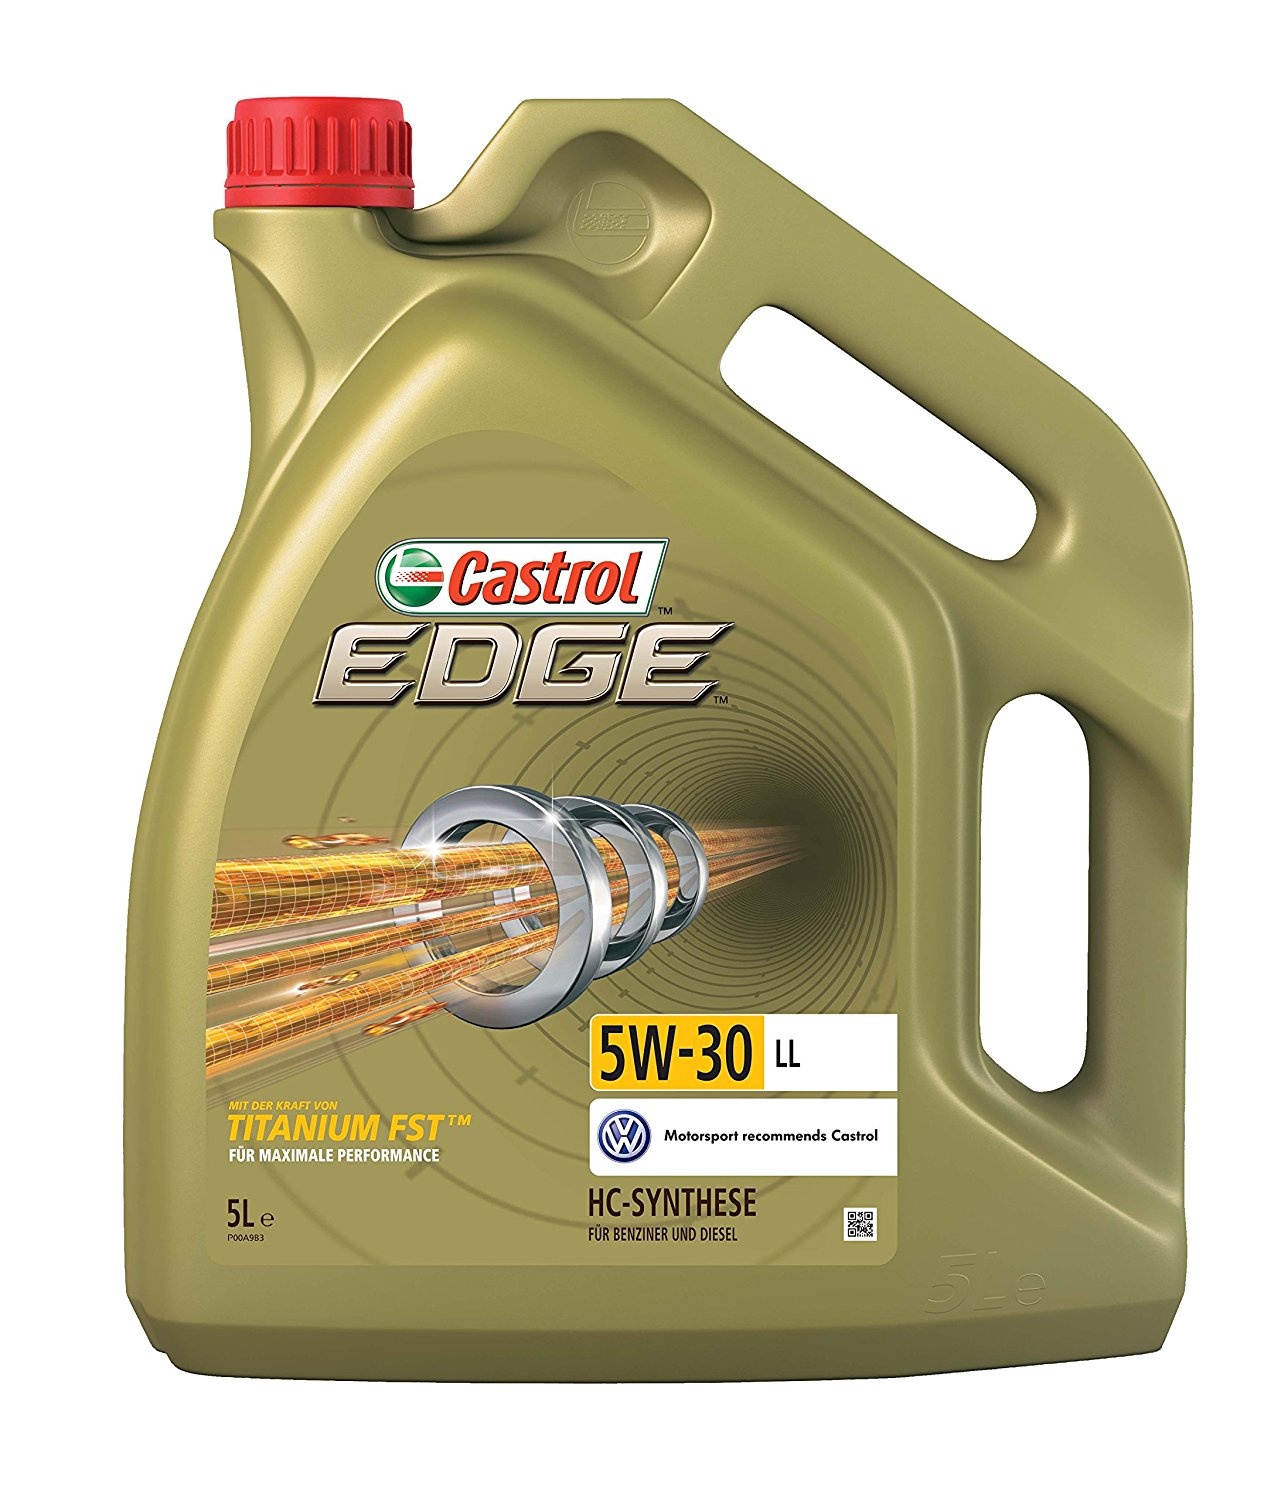 huile moteur 5w30 castrol edge ll avis tests prix en oct 2018. Black Bedroom Furniture Sets. Home Design Ideas